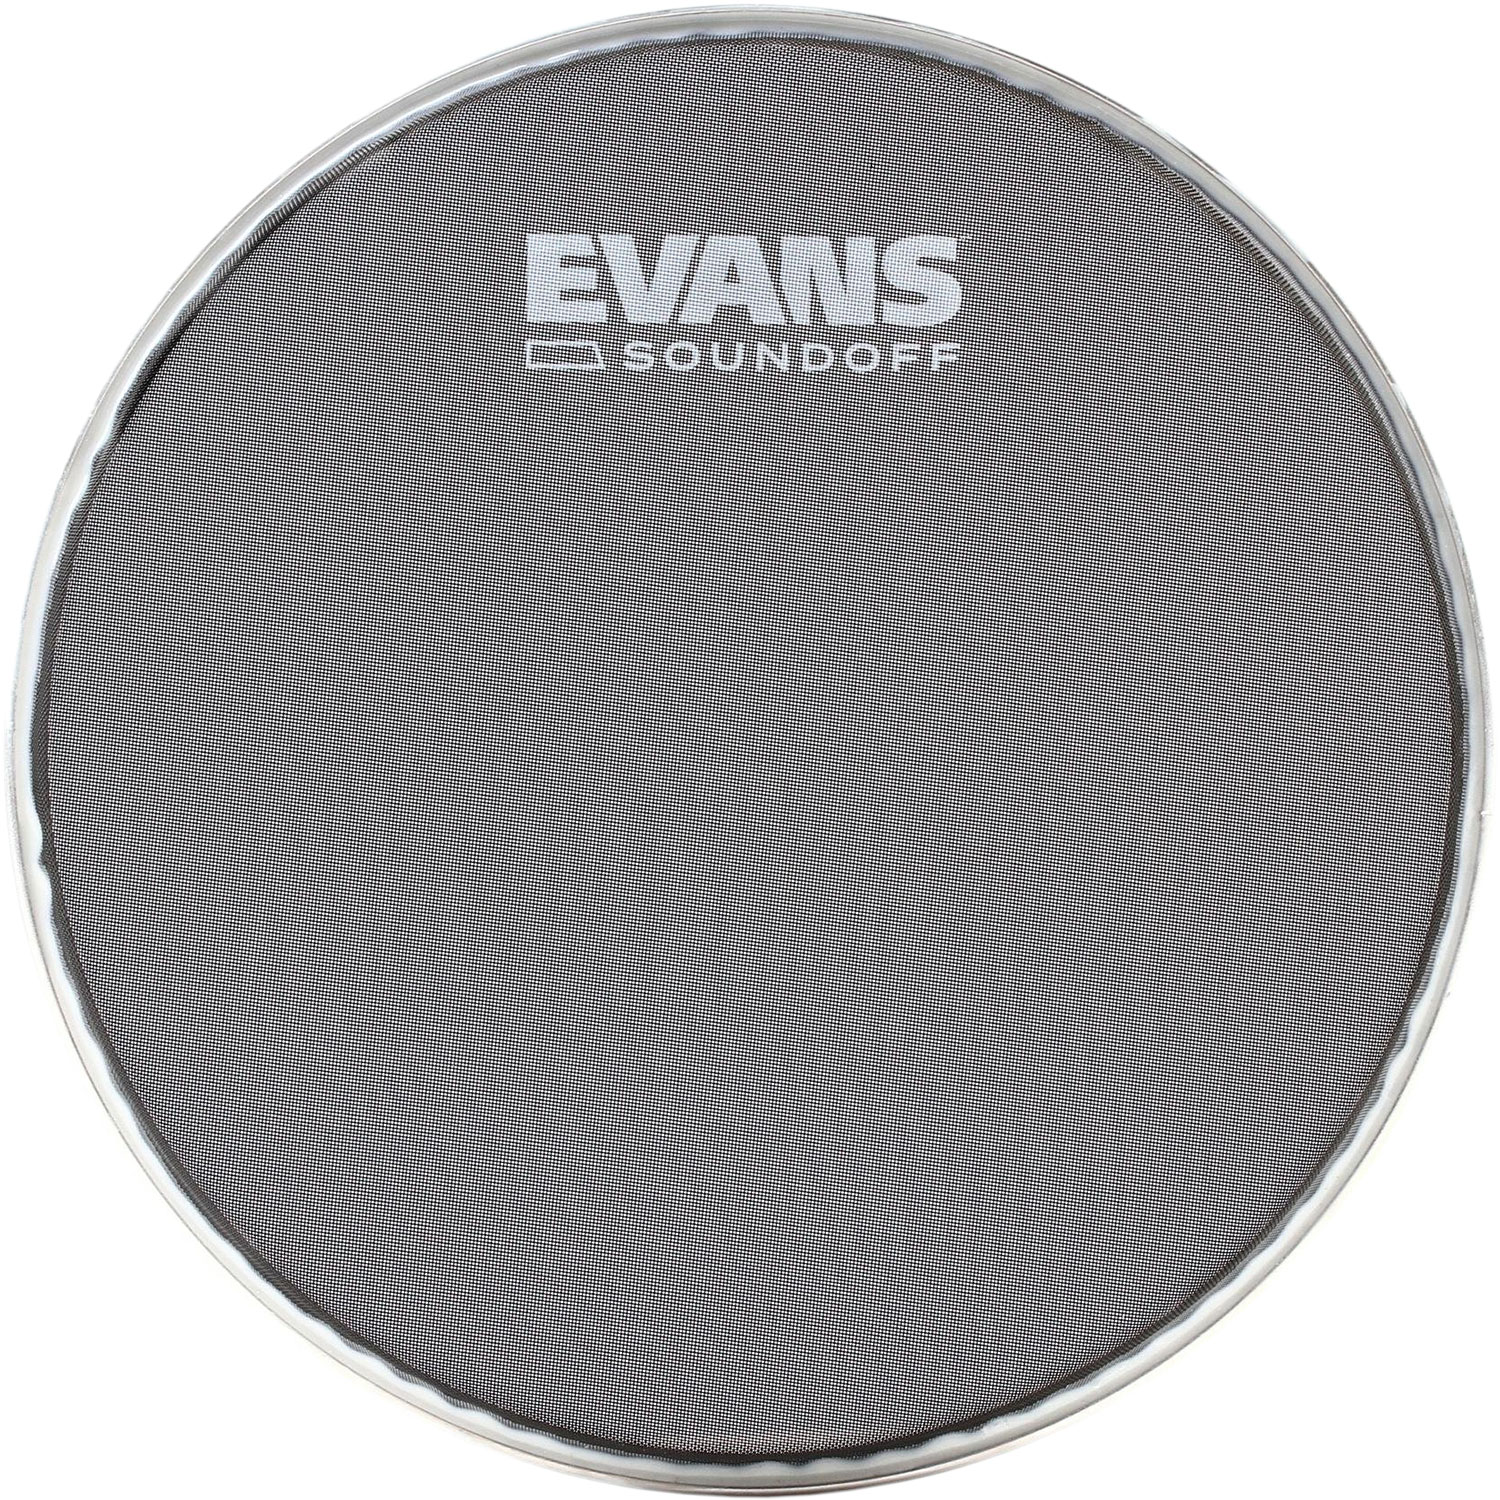 "Evans 14"" SoundOff Mesh Drum Head"